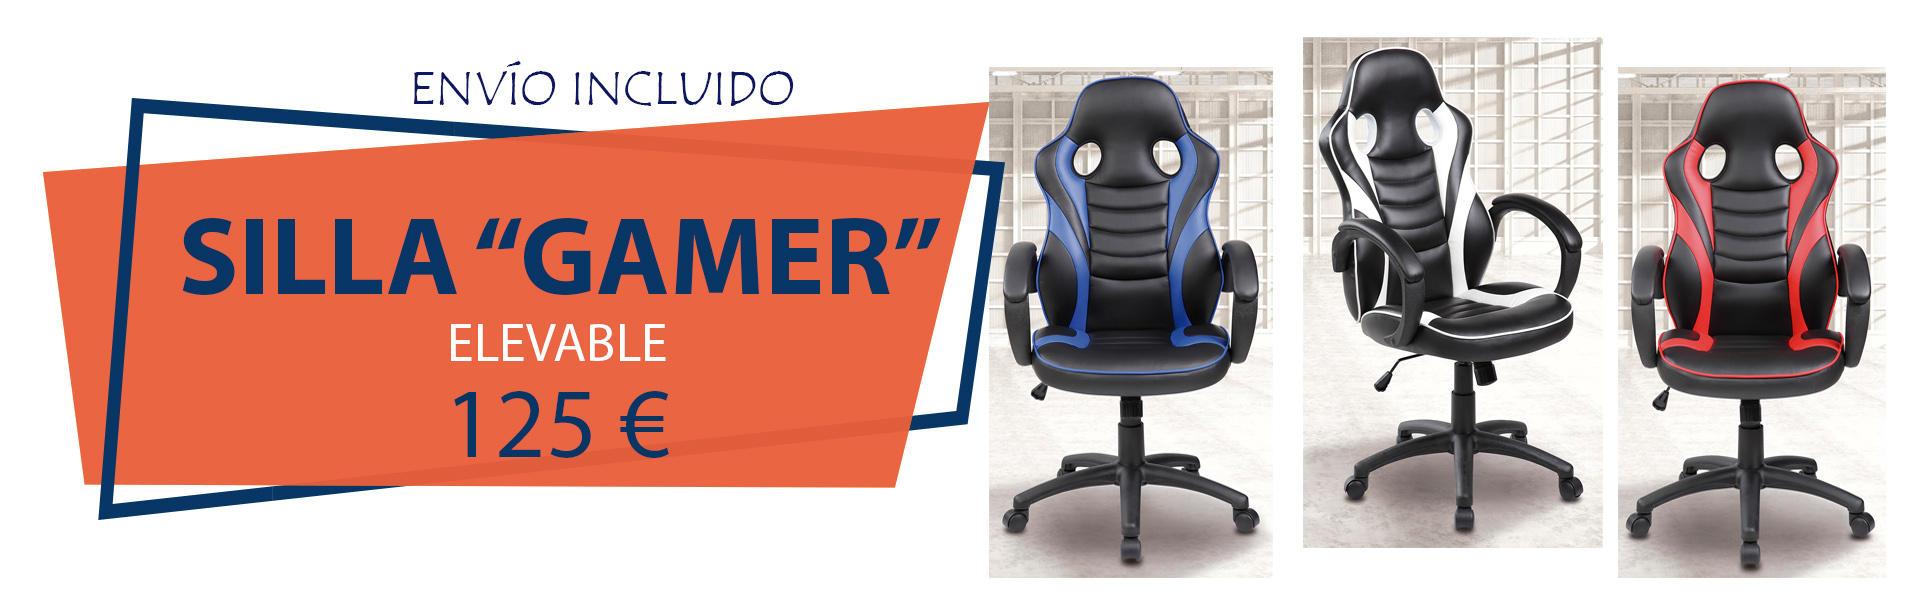 sillas-gamer_ENVIO_INCL-2